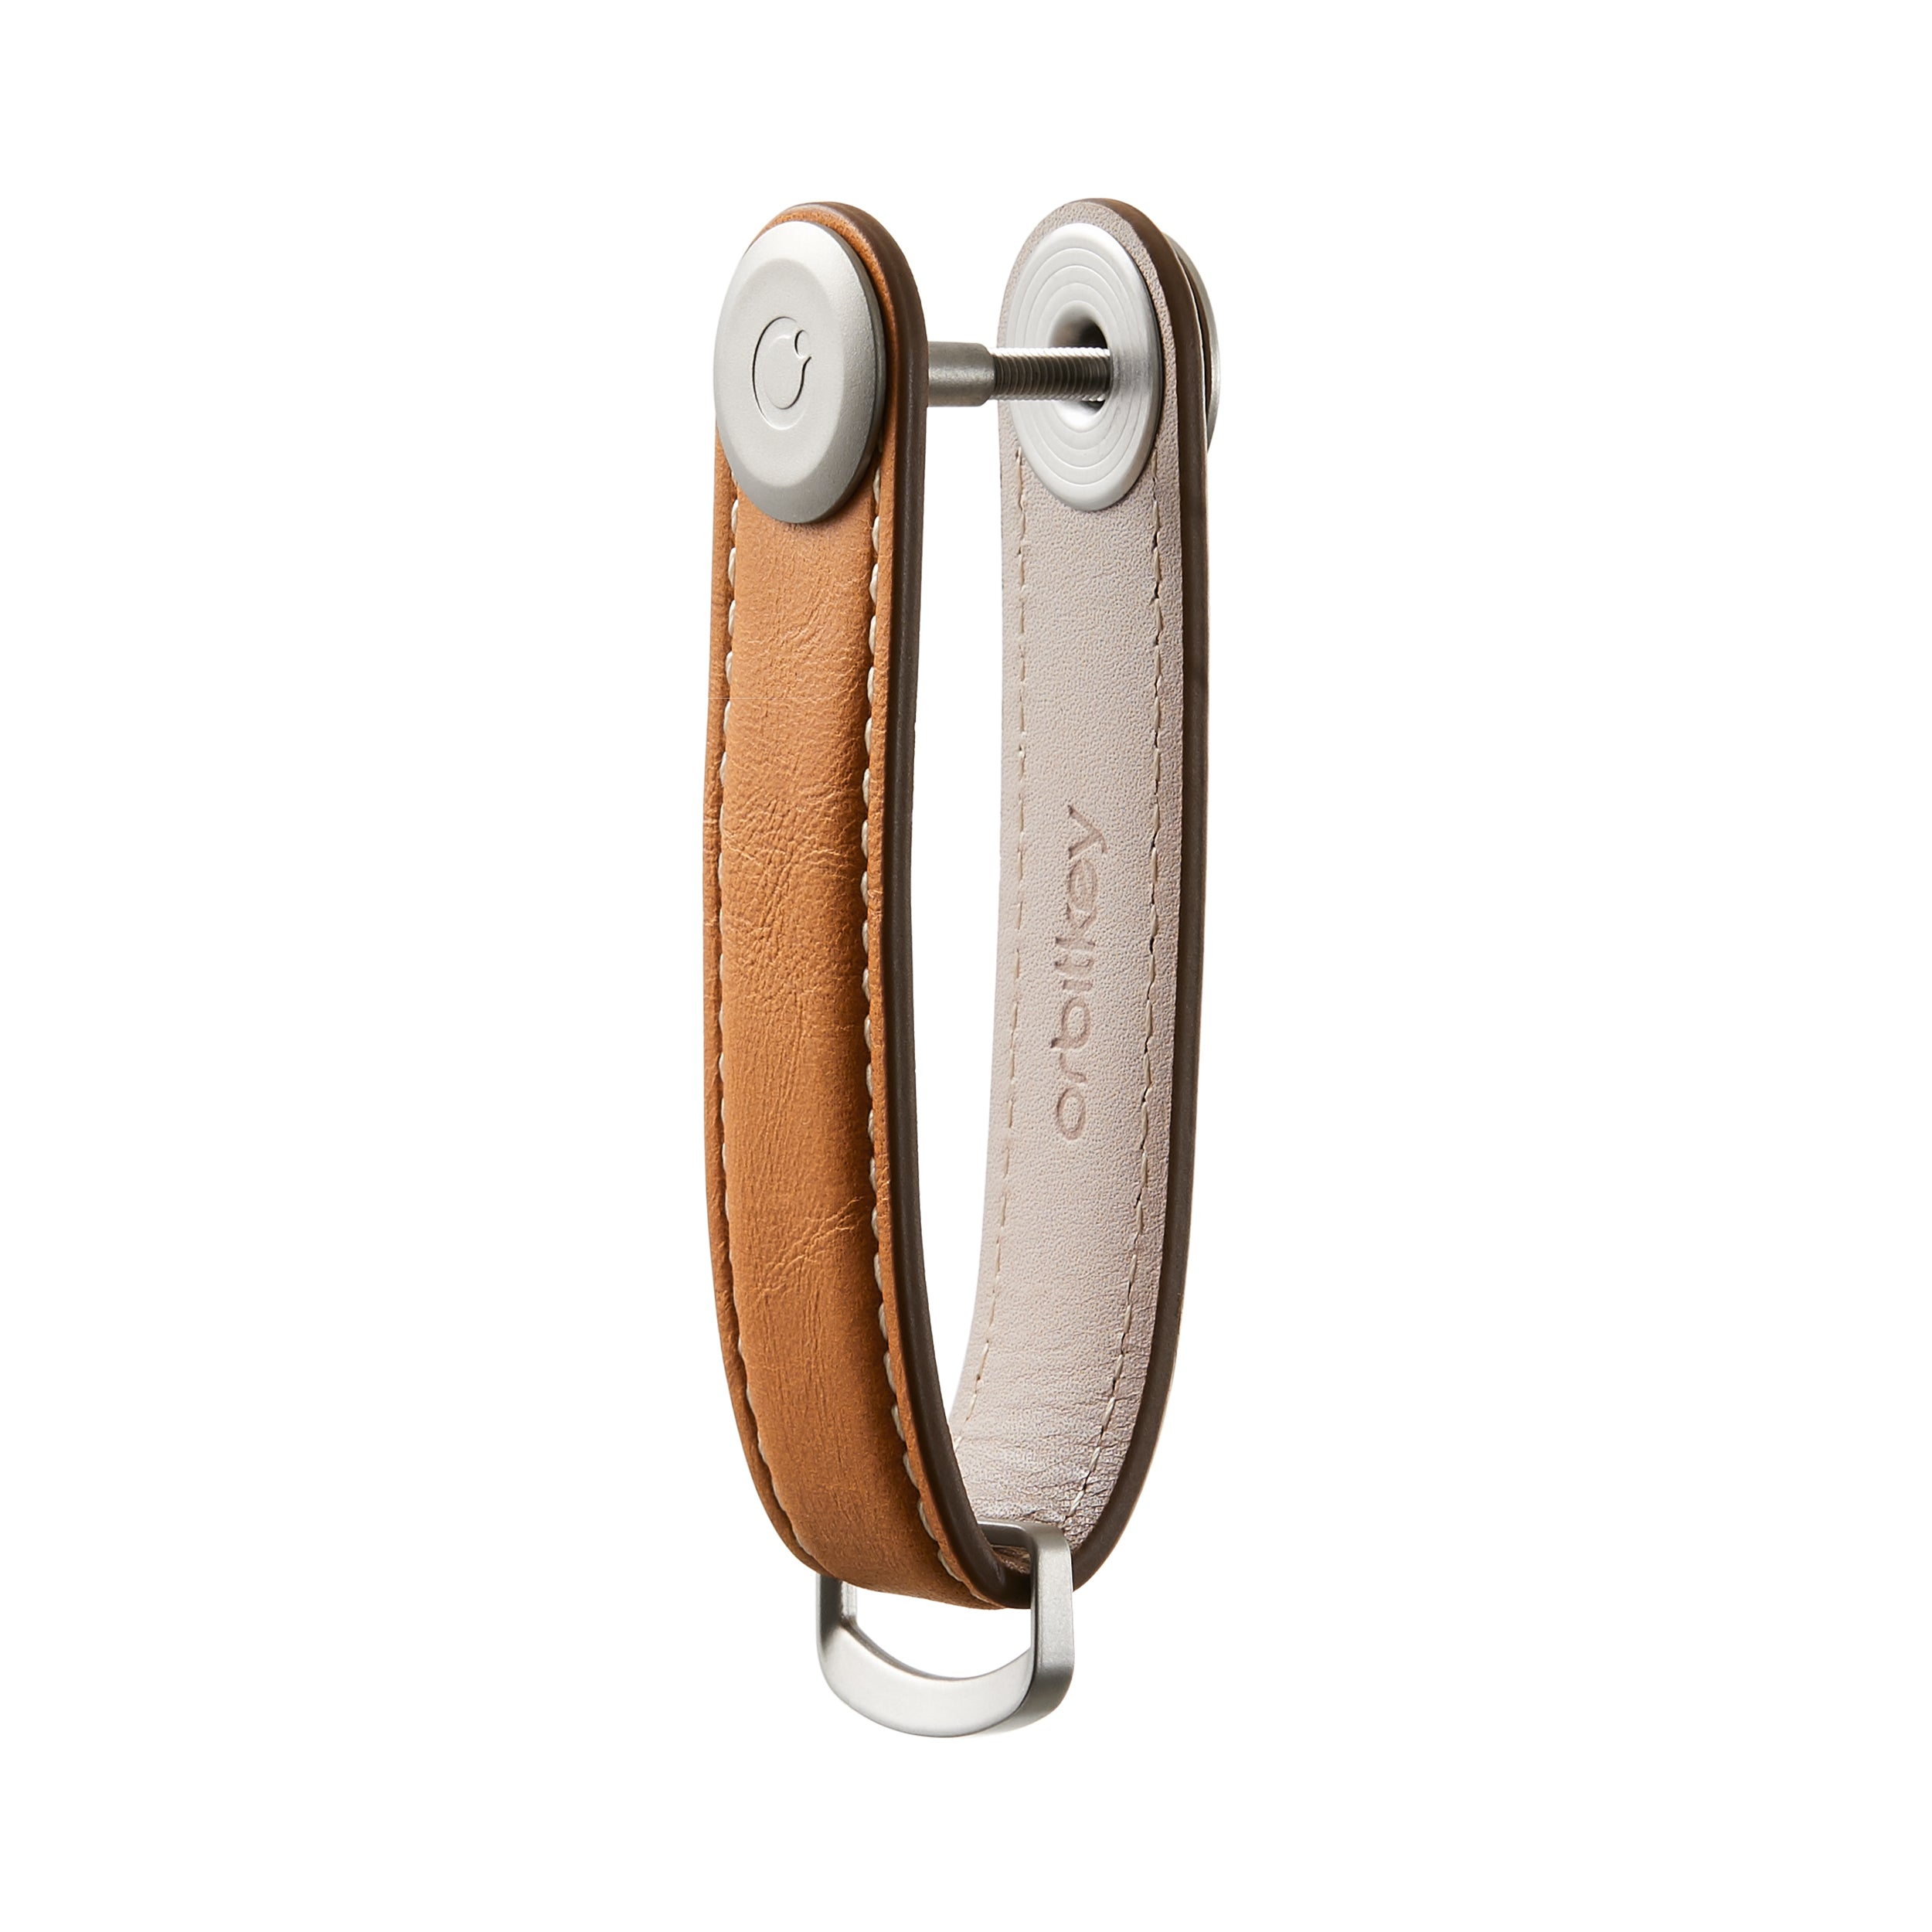 Orbitkey Leather Tan/White